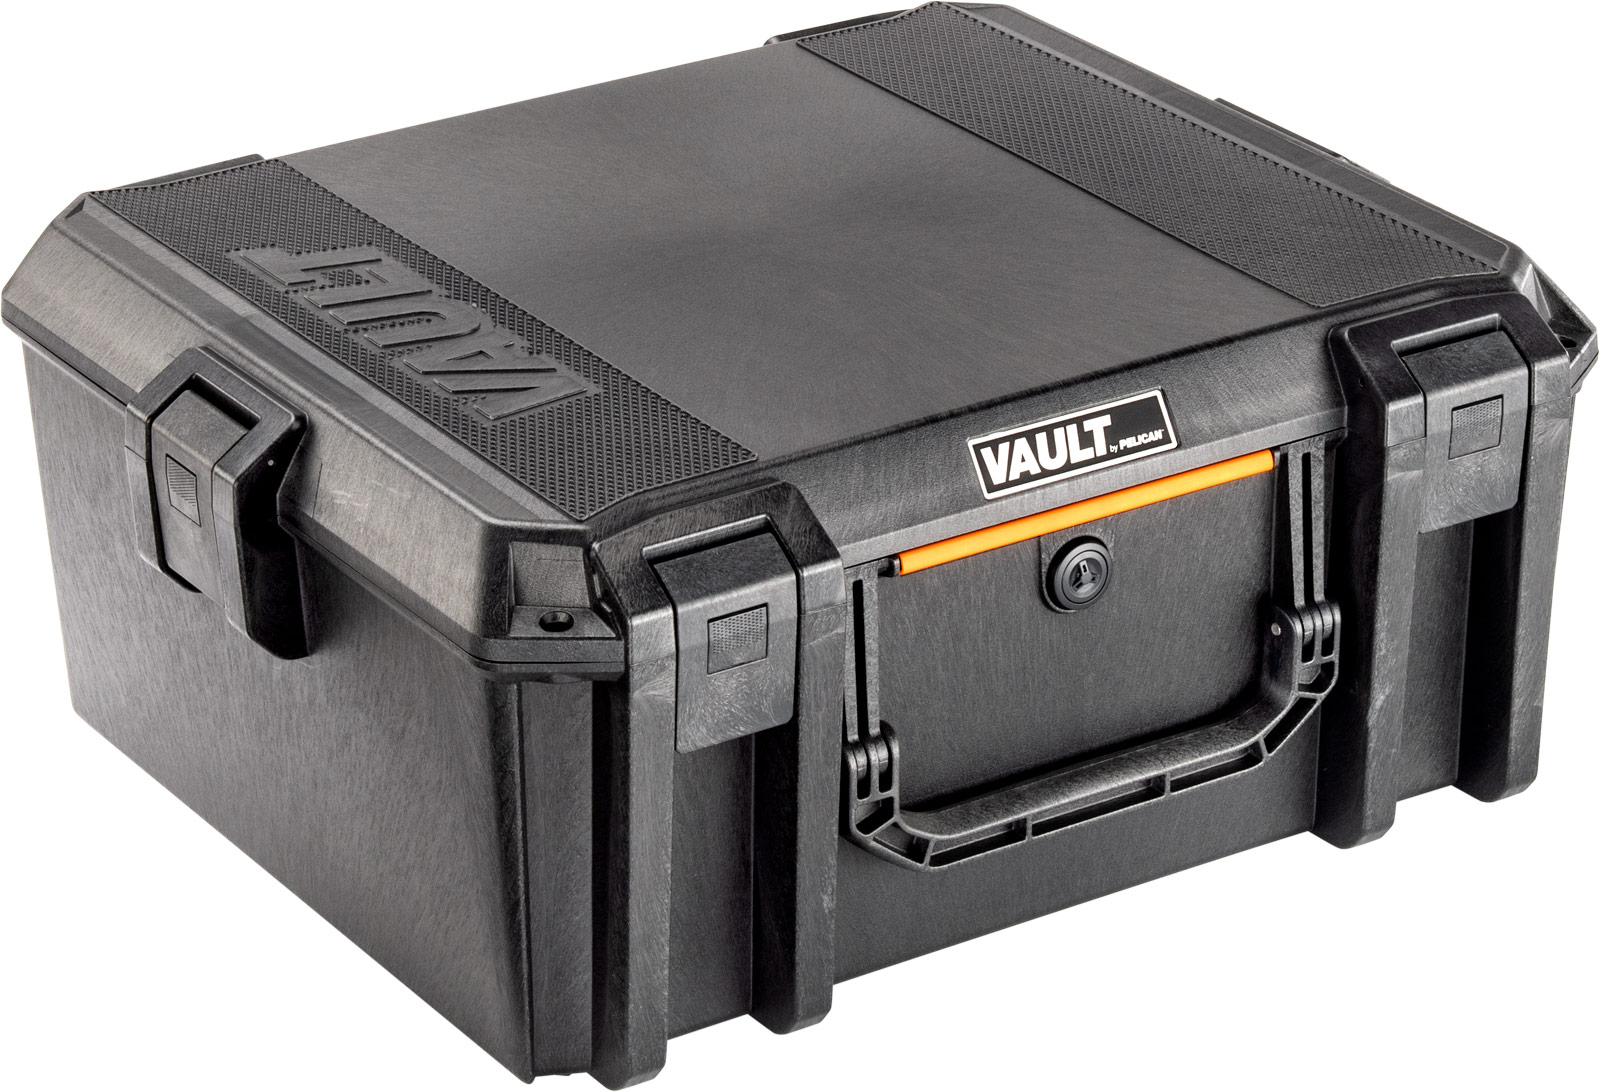 buy pelican vault v600 shop waterproof case